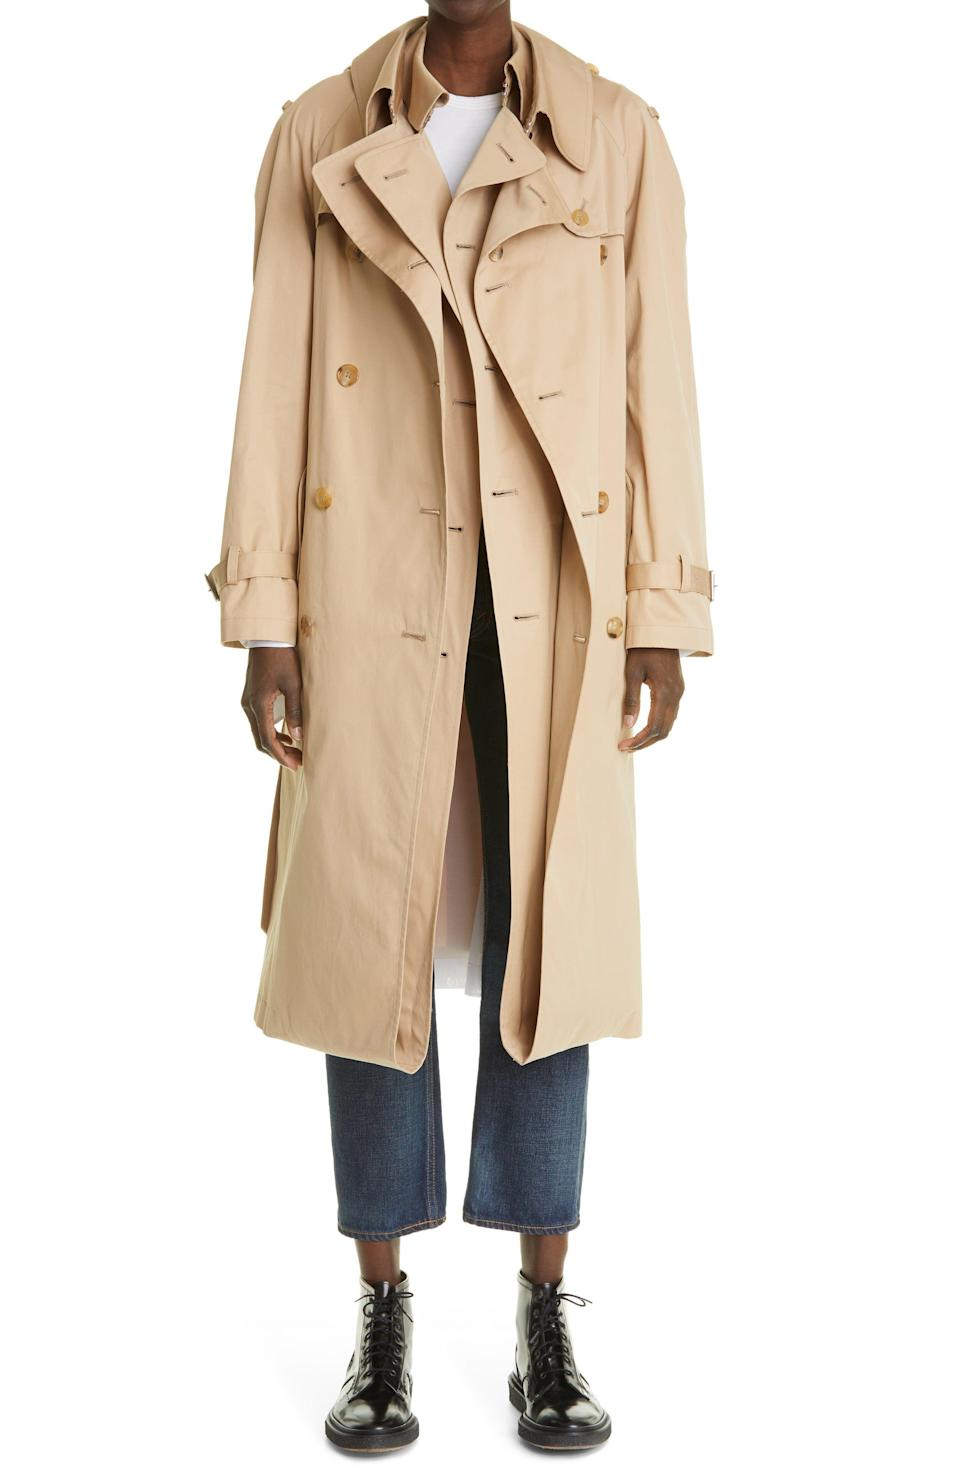 """<p><strong>Junya Watanabe</strong></p><p>nordstrom.com</p><p><strong>$1084.00</strong></p><p><a href=""""https://go.redirectingat.com?id=74968X1596630&url=https%3A%2F%2Fwww.nordstrom.com%2Fs%2Fjunya-watanabe-double-layer-trench-coat%2F5872224&sref=https%3A%2F%2Fwww.elle.com%2Ffashion%2Fshopping%2Fg37093153%2Fdesigner-deals-nordstroms-anniversary-sale-2021%2F"""" rel=""""nofollow noopener"""" target=""""_blank"""" data-ylk=""""slk:Shop Now"""" class=""""link rapid-noclick-resp"""">Shop Now</a></p><p><strong><del>$2,710 </del>$1,084 (60% off)</strong></p>"""